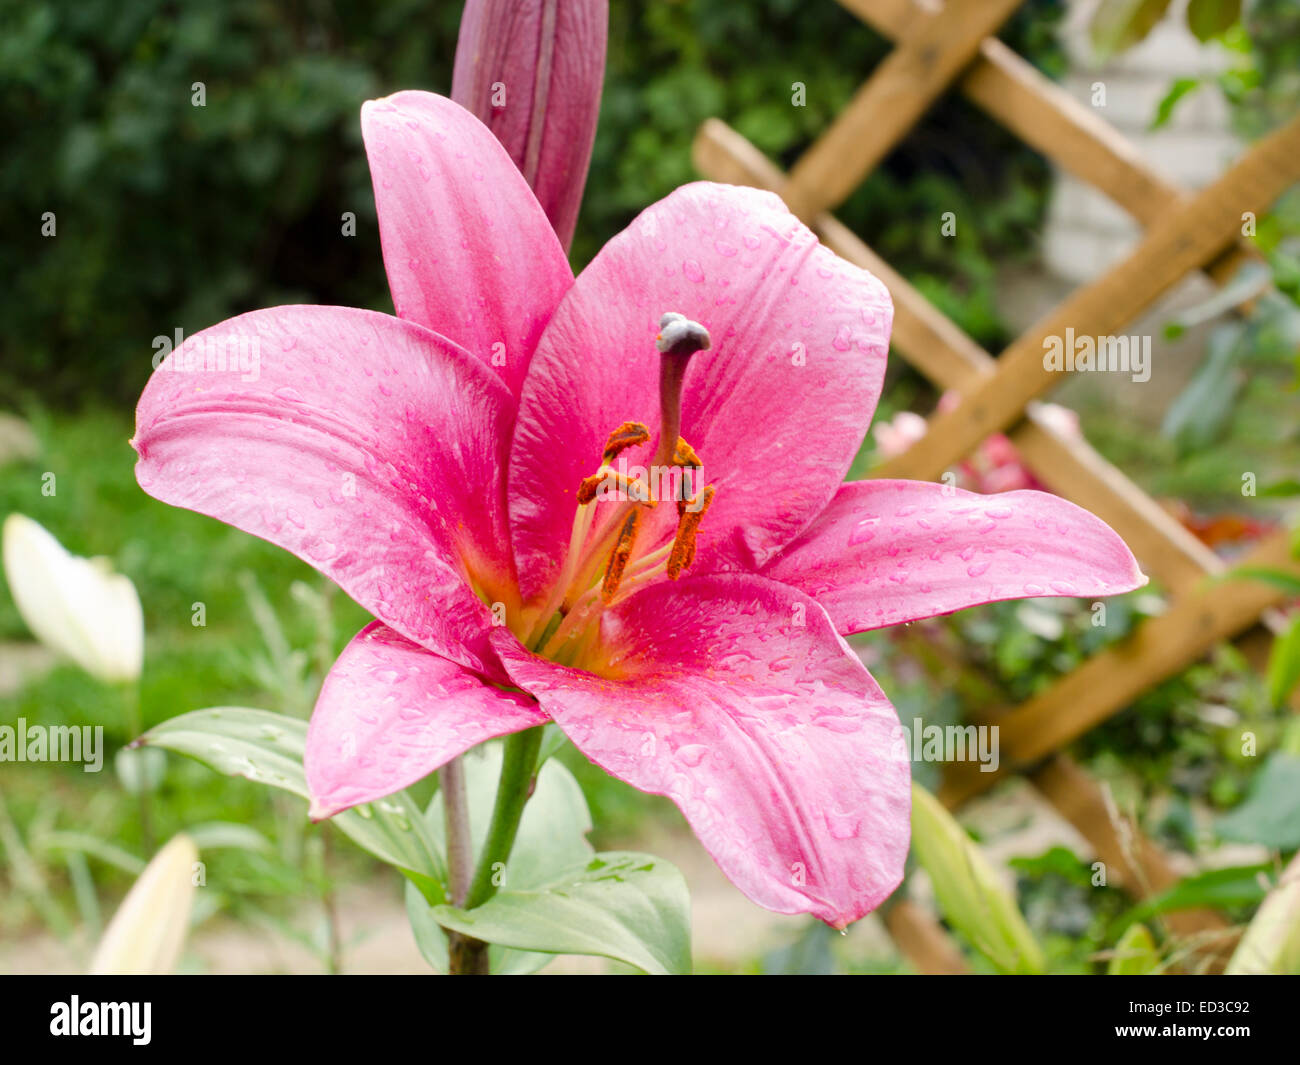 Lily Varieties Flowers In The Garden Stock Photo 76907518 Alamy